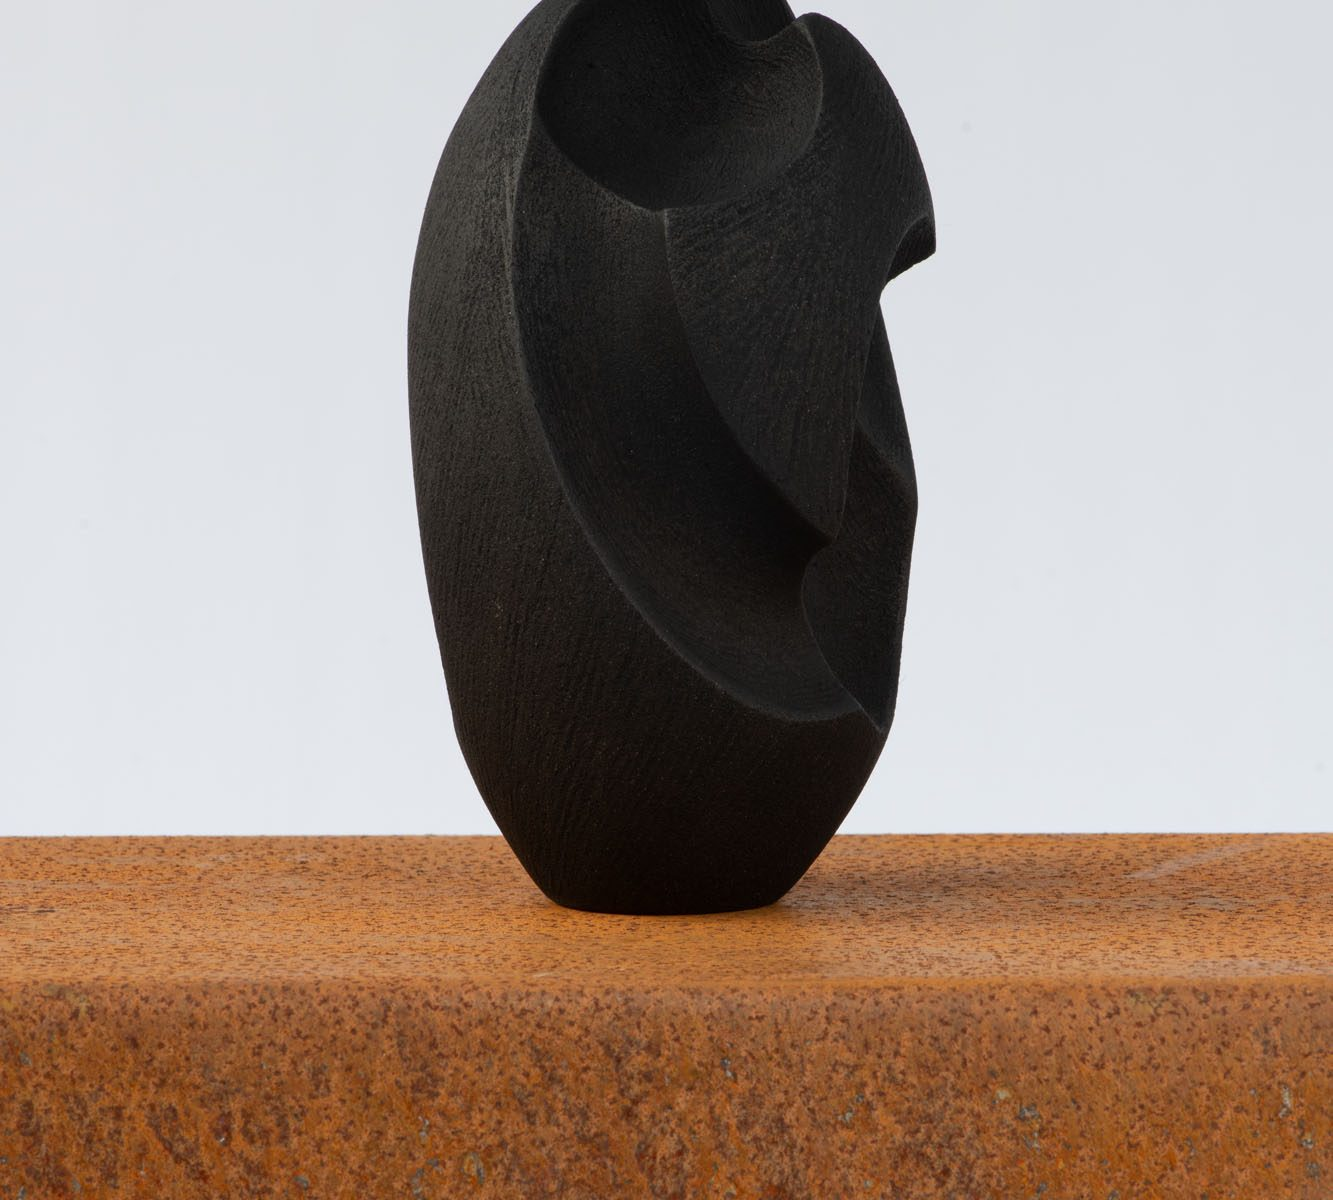 Small Black Vertical Form - Oct 2020 #7